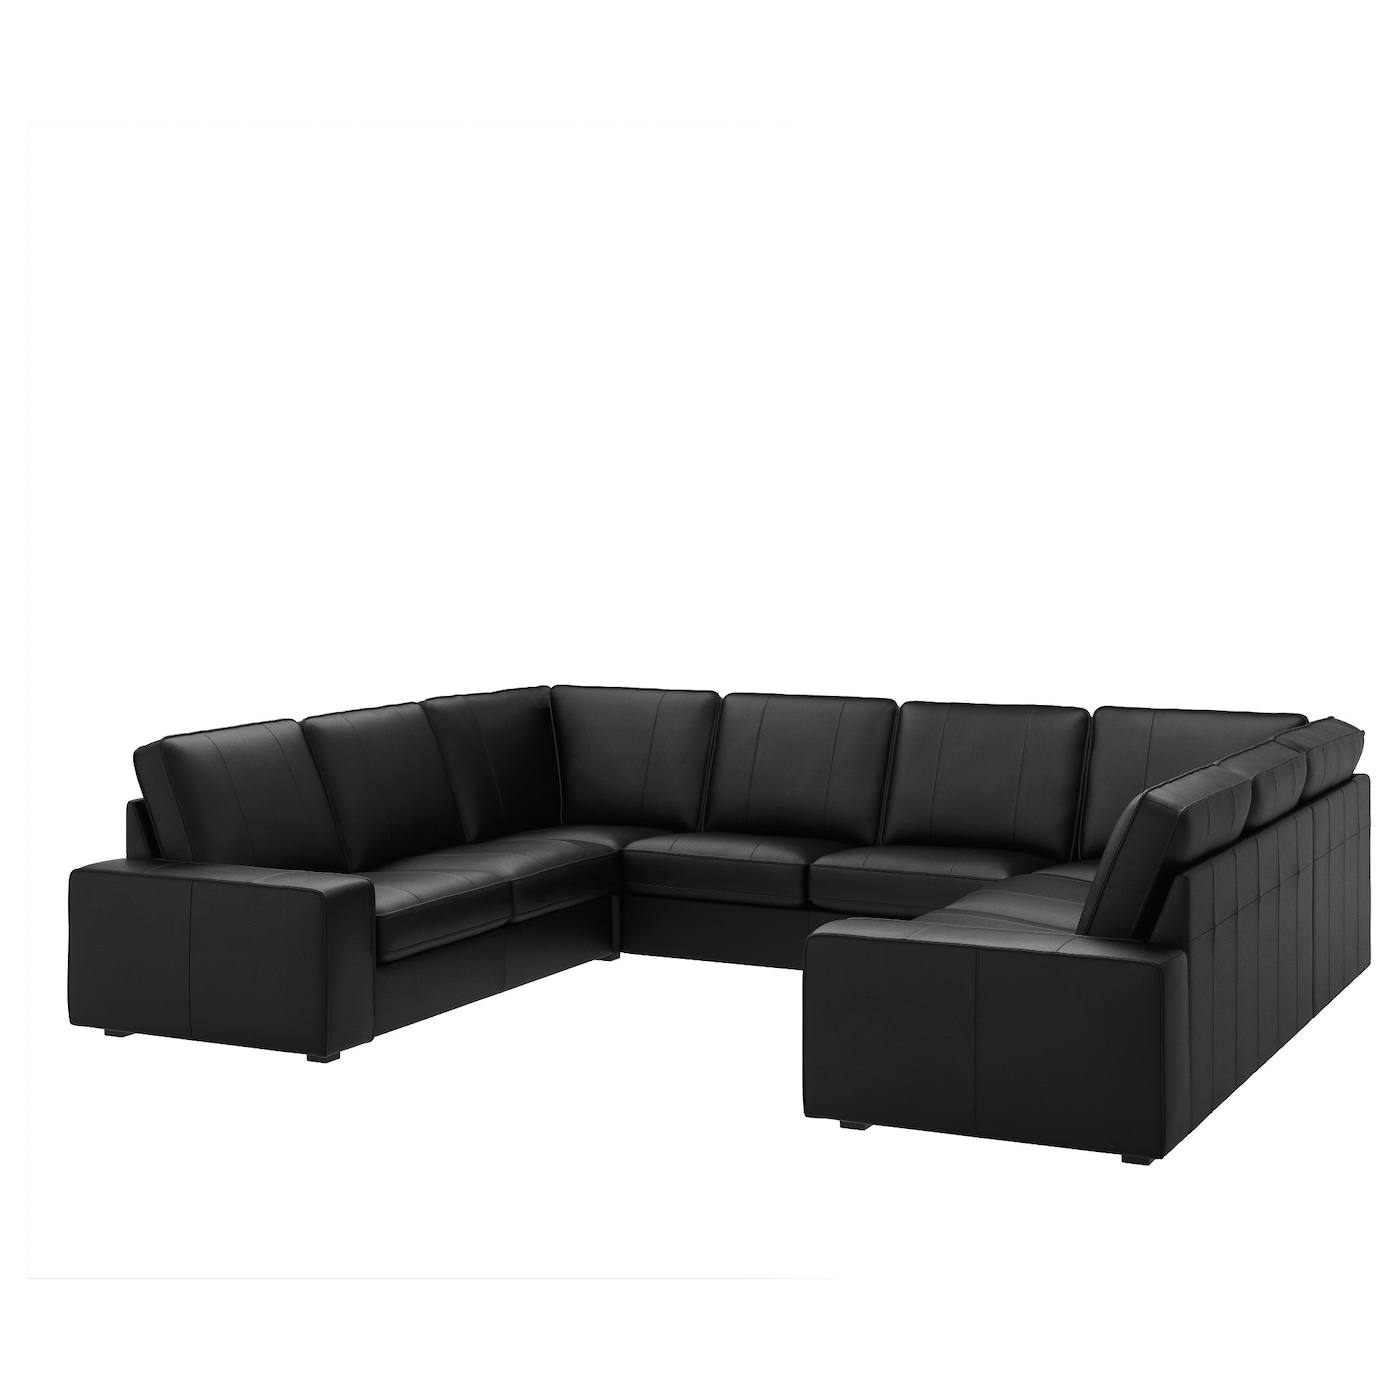 IKEA KIVIK u-shaped sofa, 6 seat 10 year guarantee. Read about the terms in the guarantee brochure.